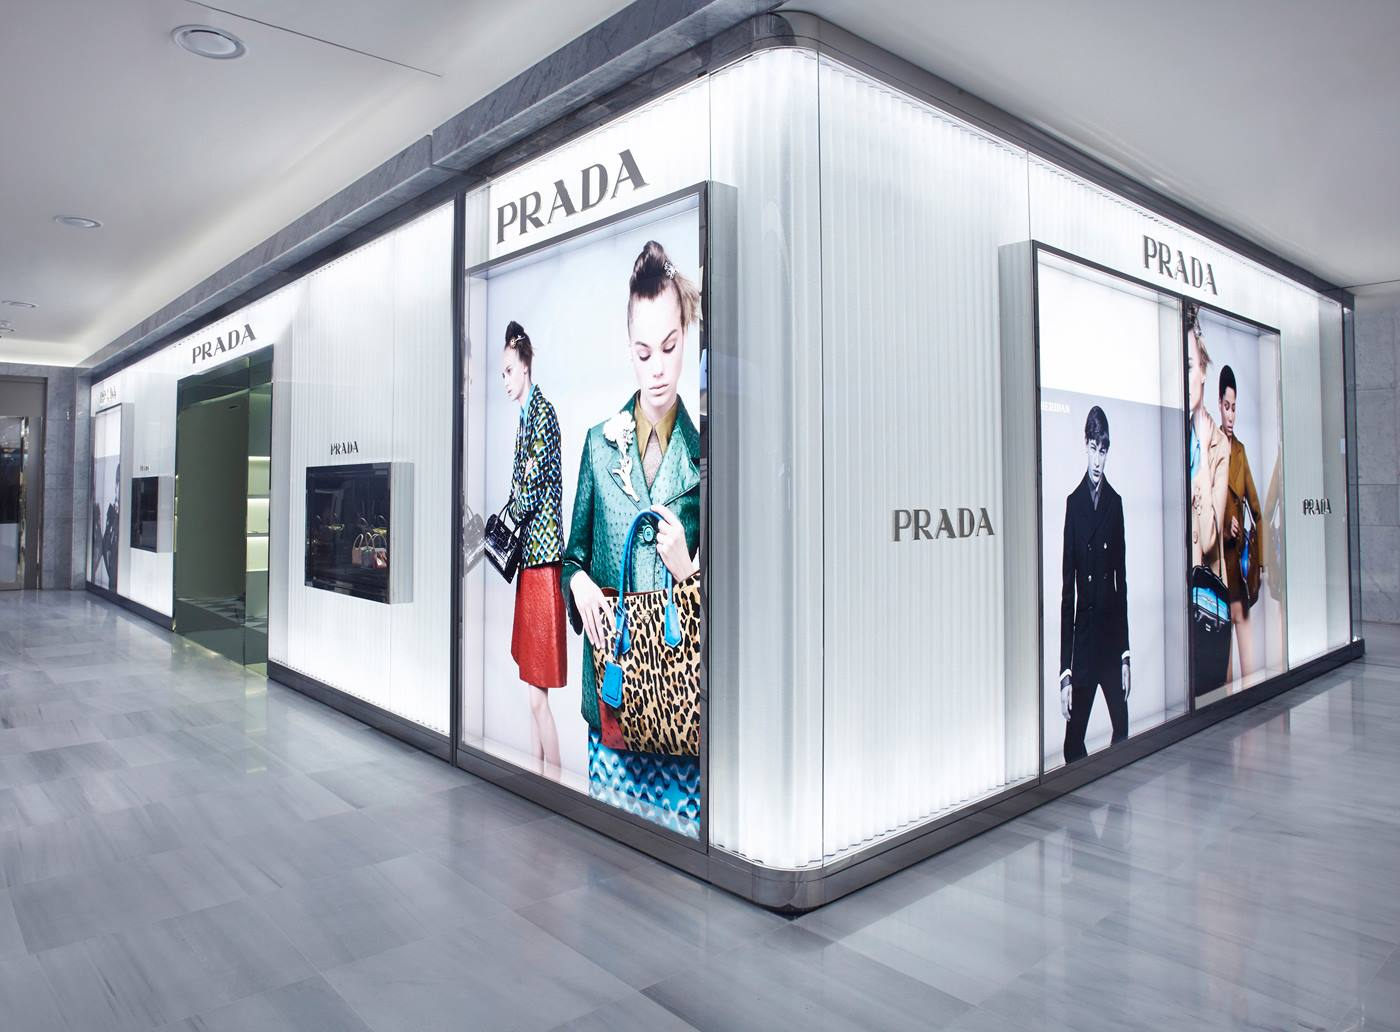 Prada Seongnam, South Korea